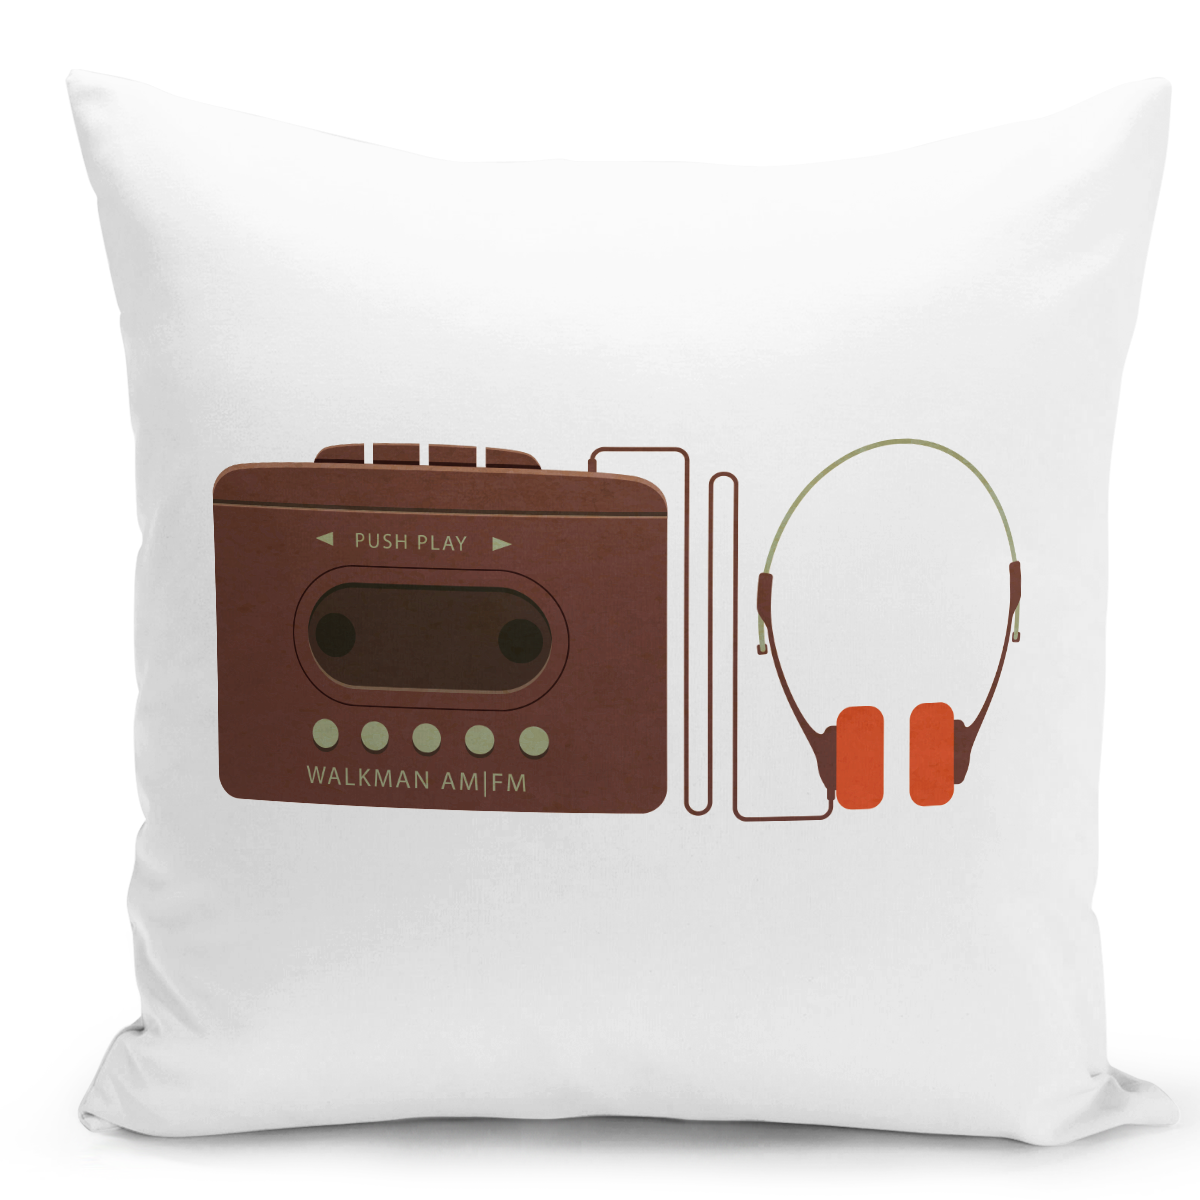 White-Throw-Pillow-Vintage-Walkman-And-Headphones---Durable-White-16-x-16-inch-Square-Home-Accent-Pillow-Sofa-Cushion-